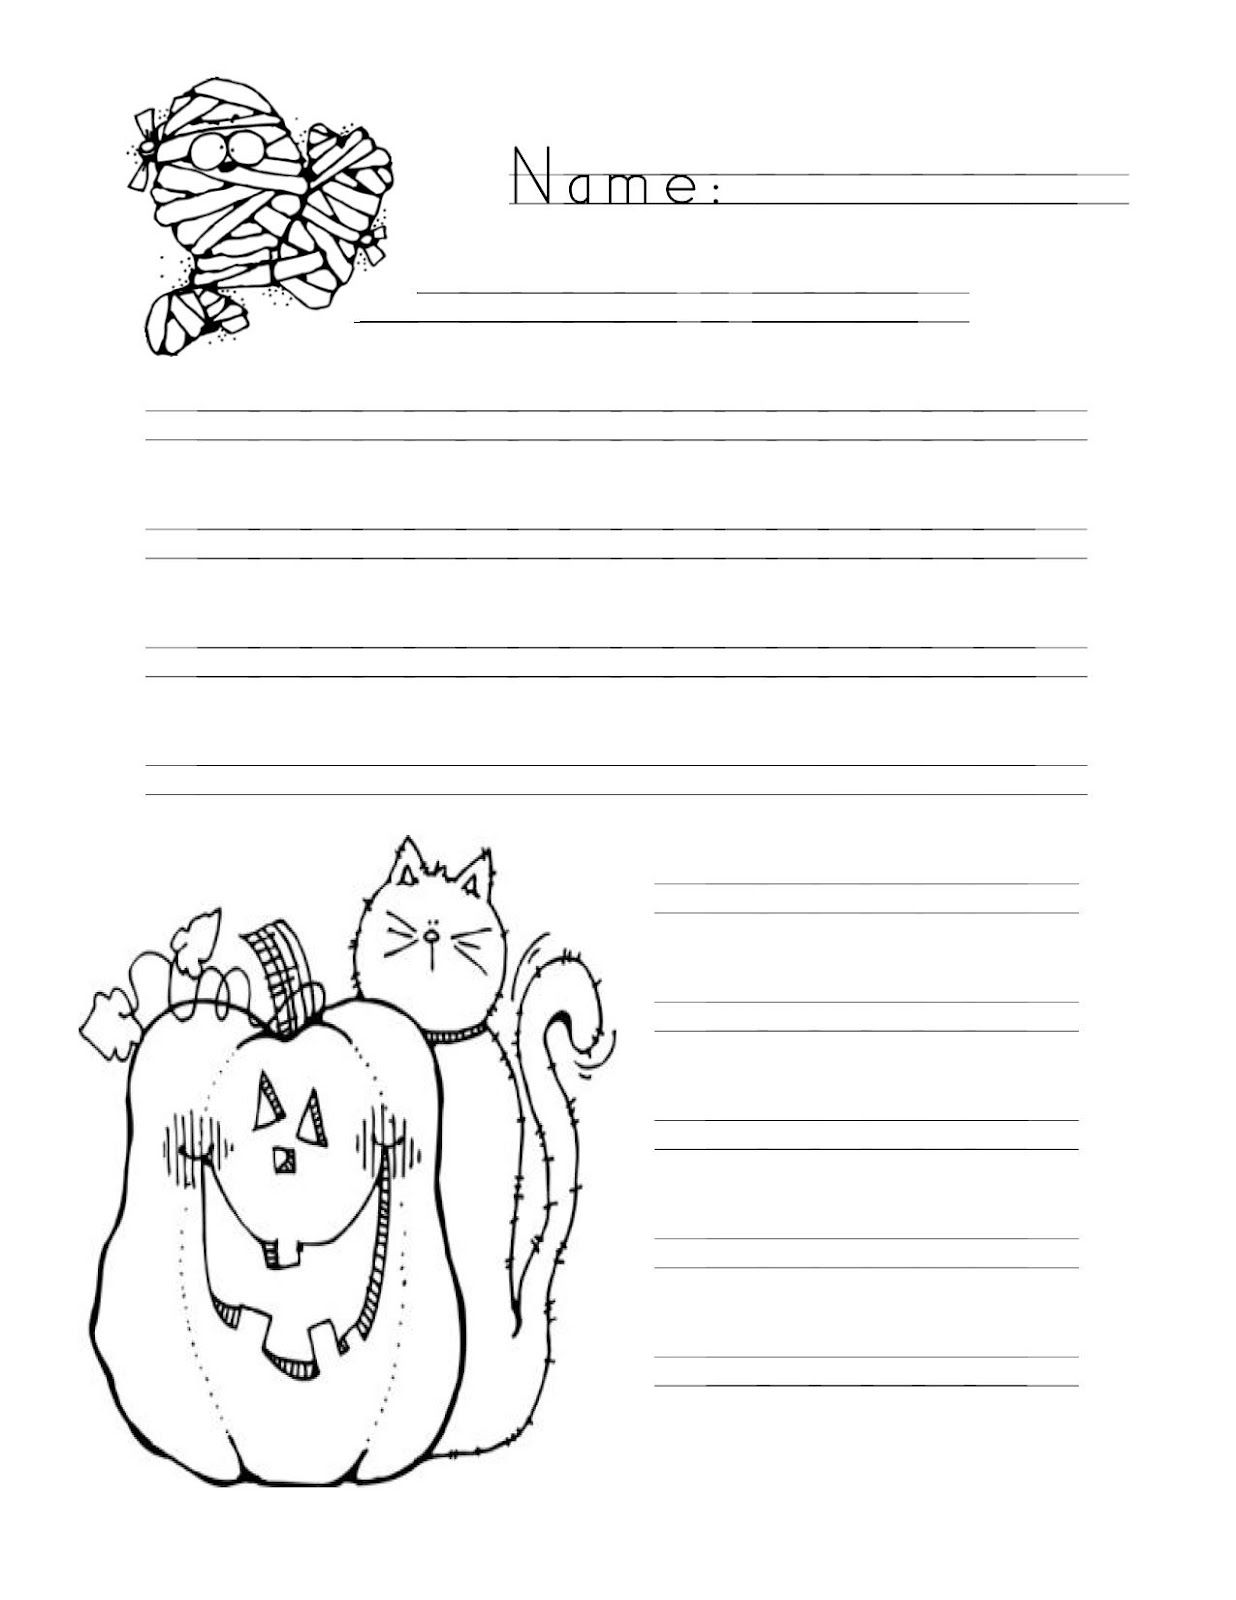 Handwriting Without Tears Paper For Halloween Handwriting Without Tears Handwriting Paper Lined Paper [ 1600 x 1236 Pixel ]